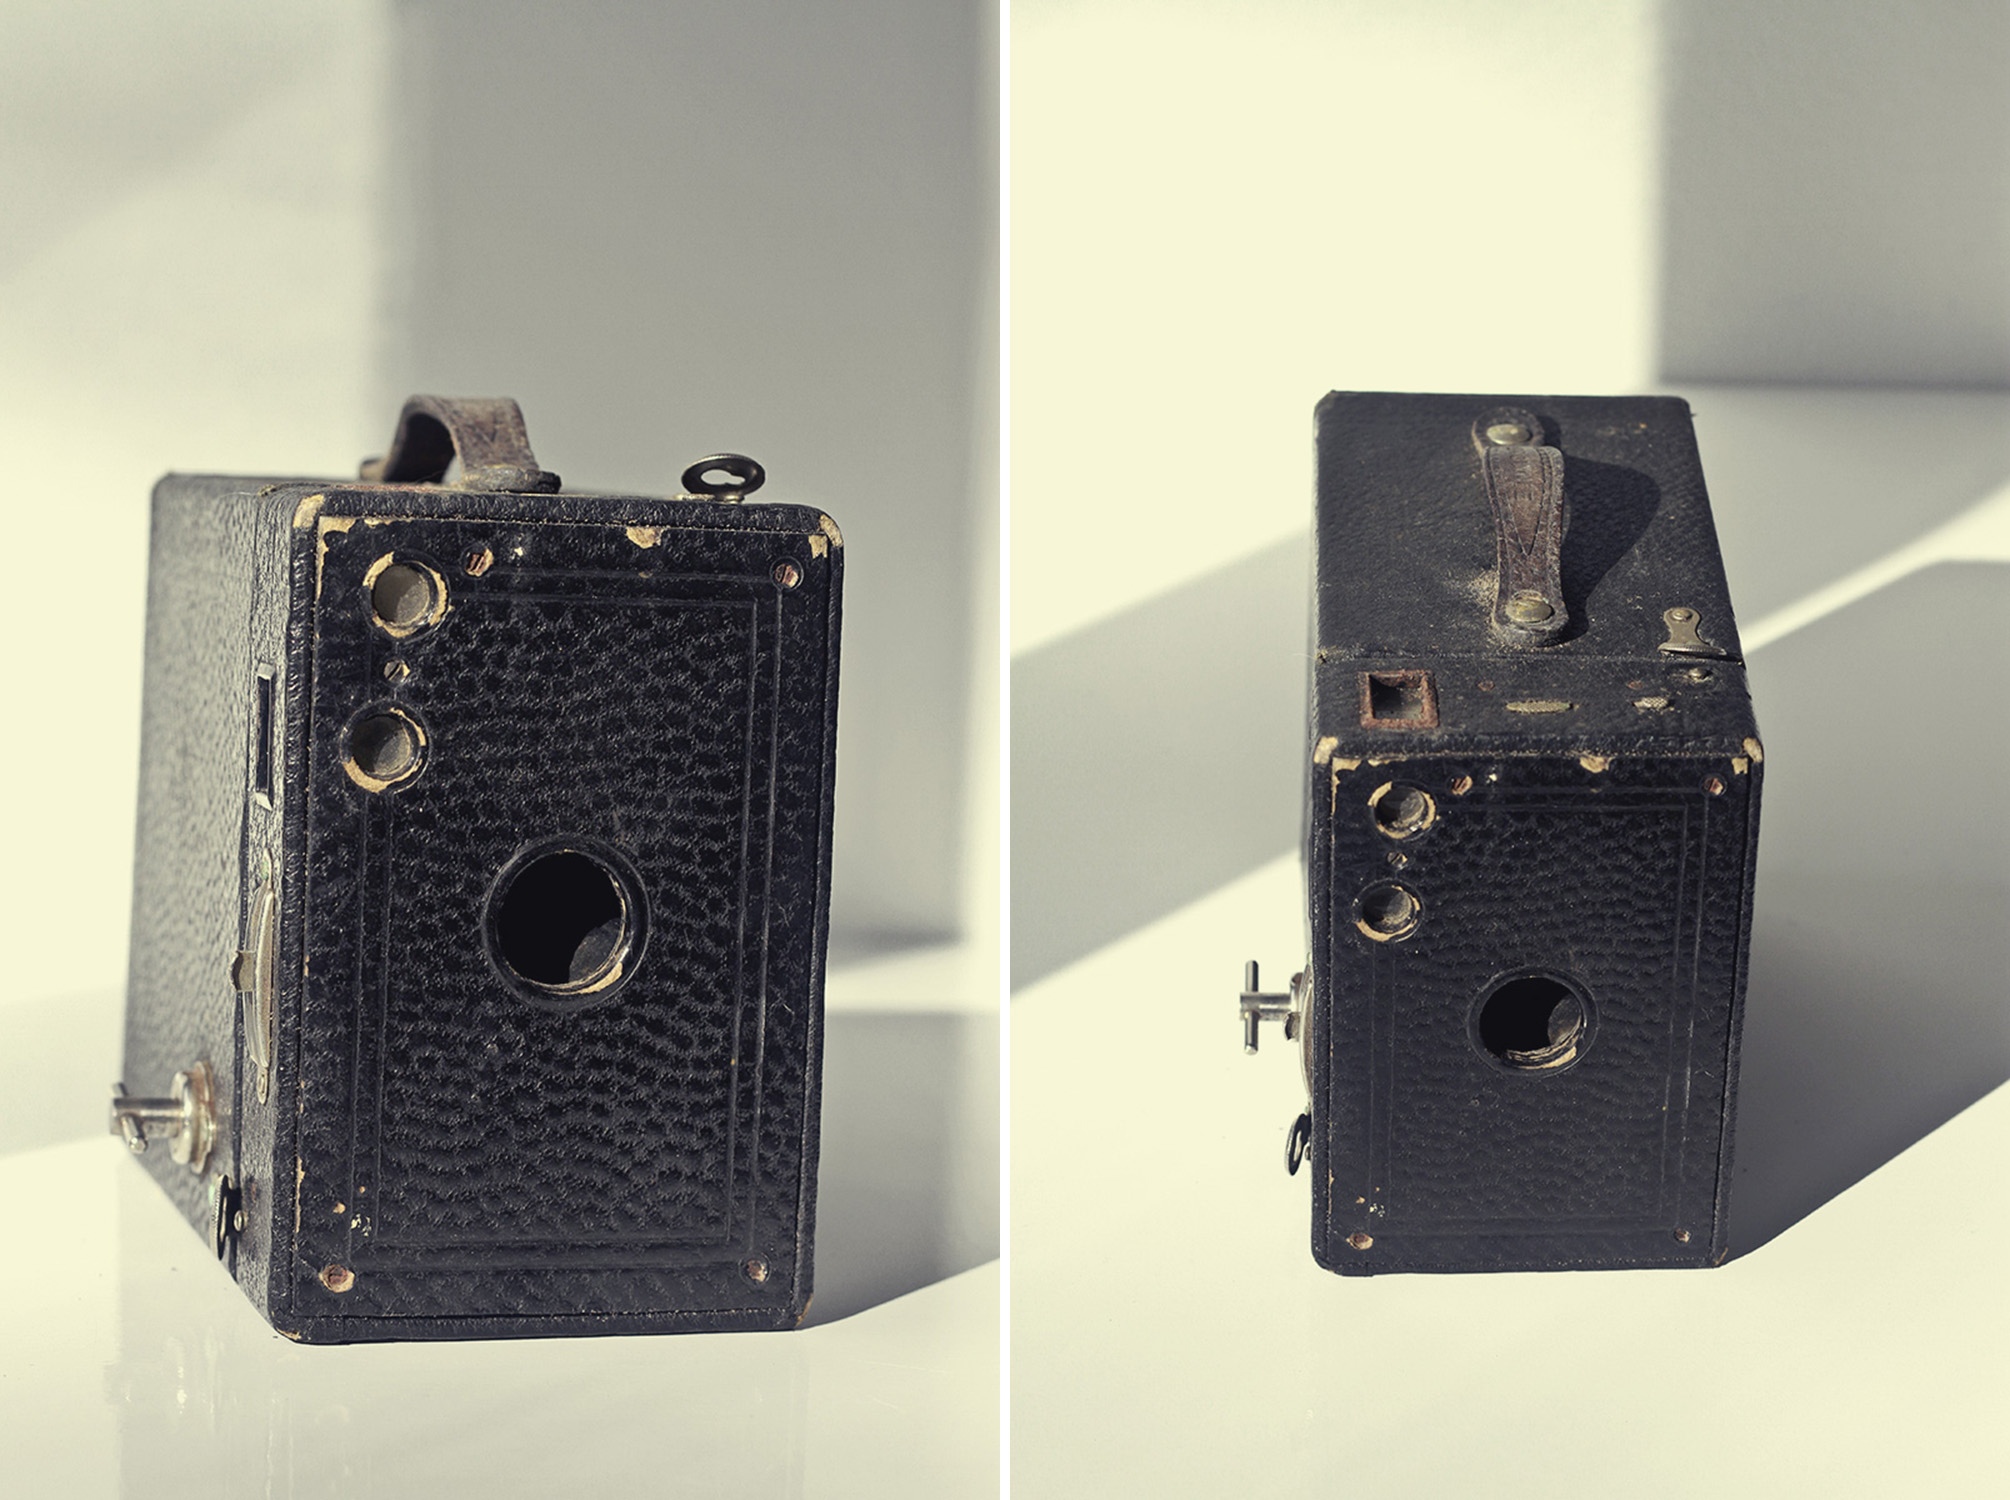 THRIFTED|| My Vintage Camera Collection: The Brownies